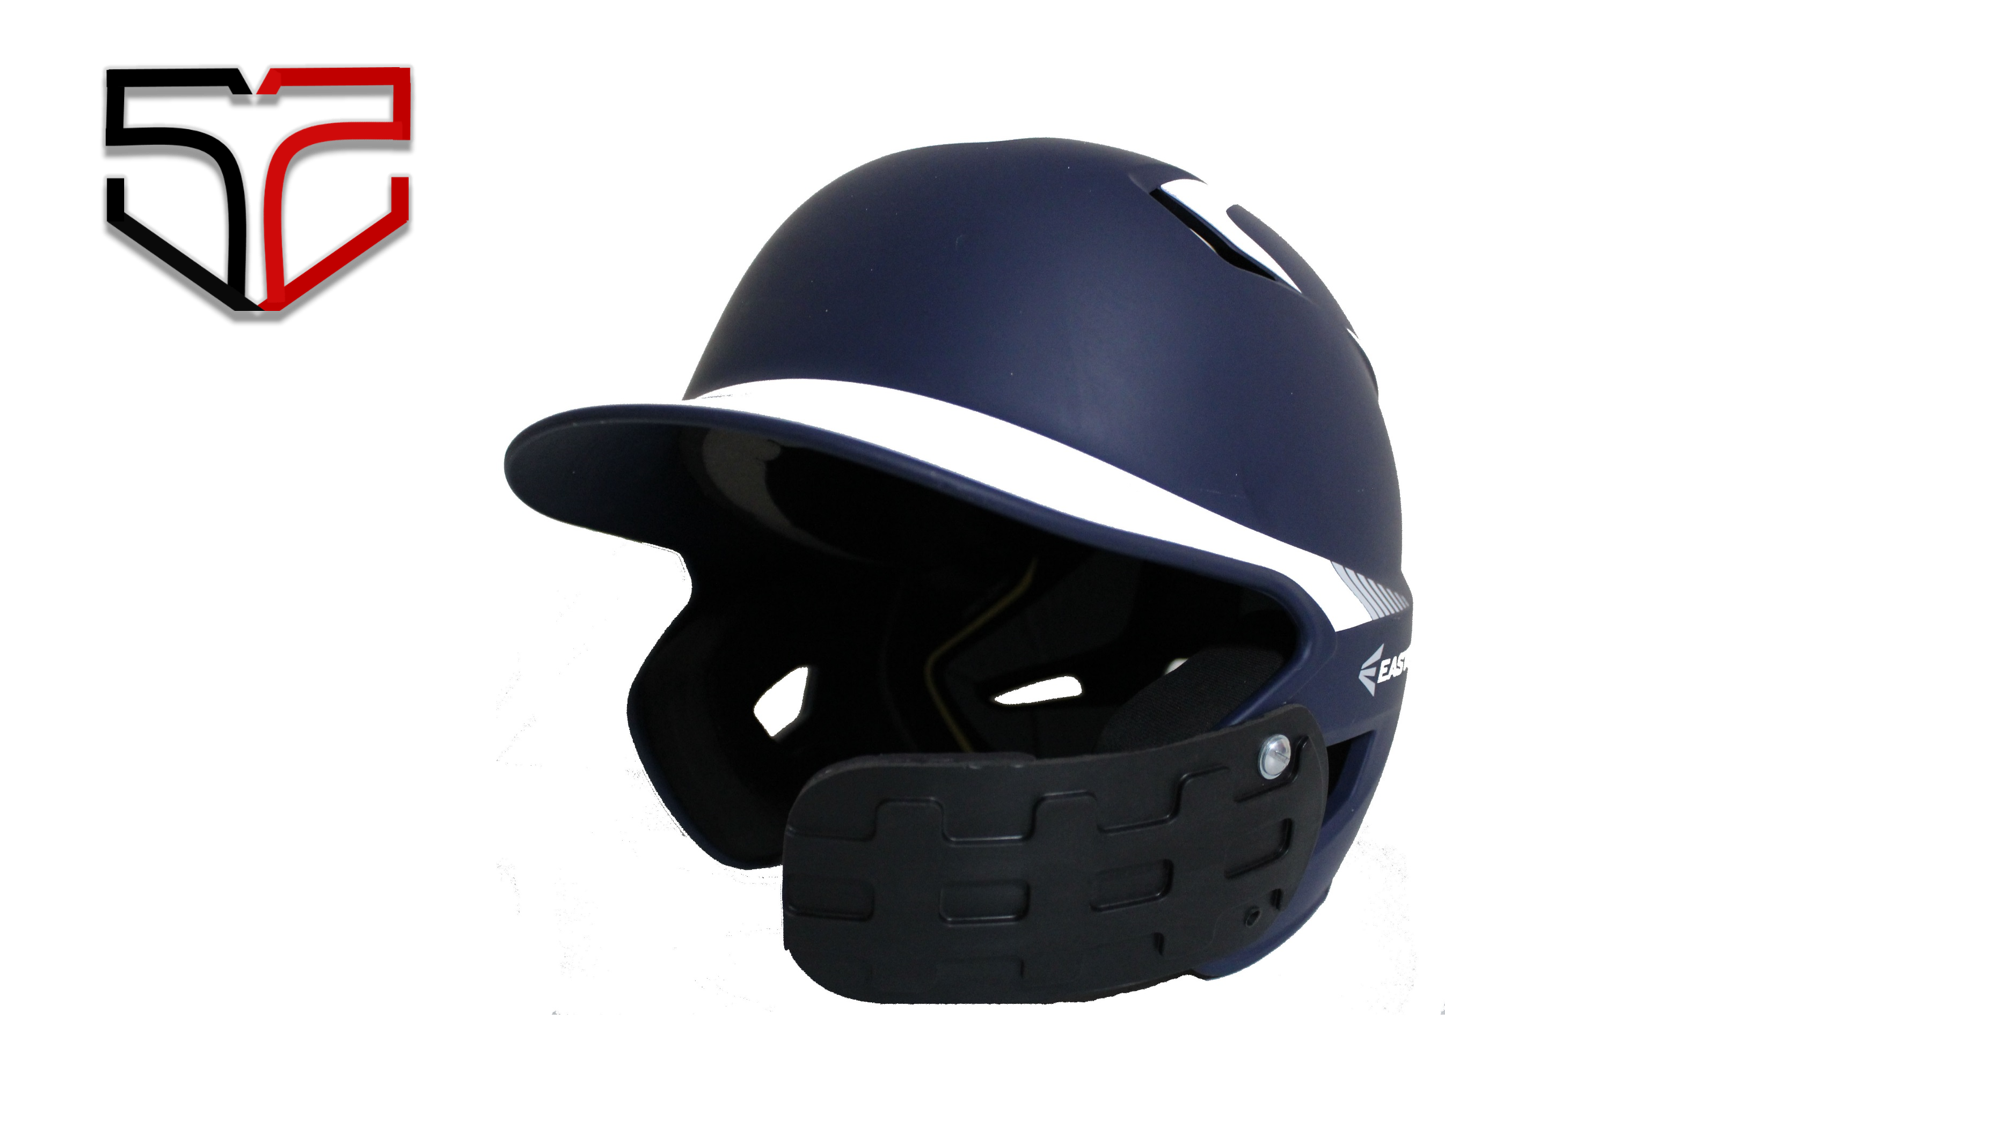 sst head protection guard set for pitchers and infielders